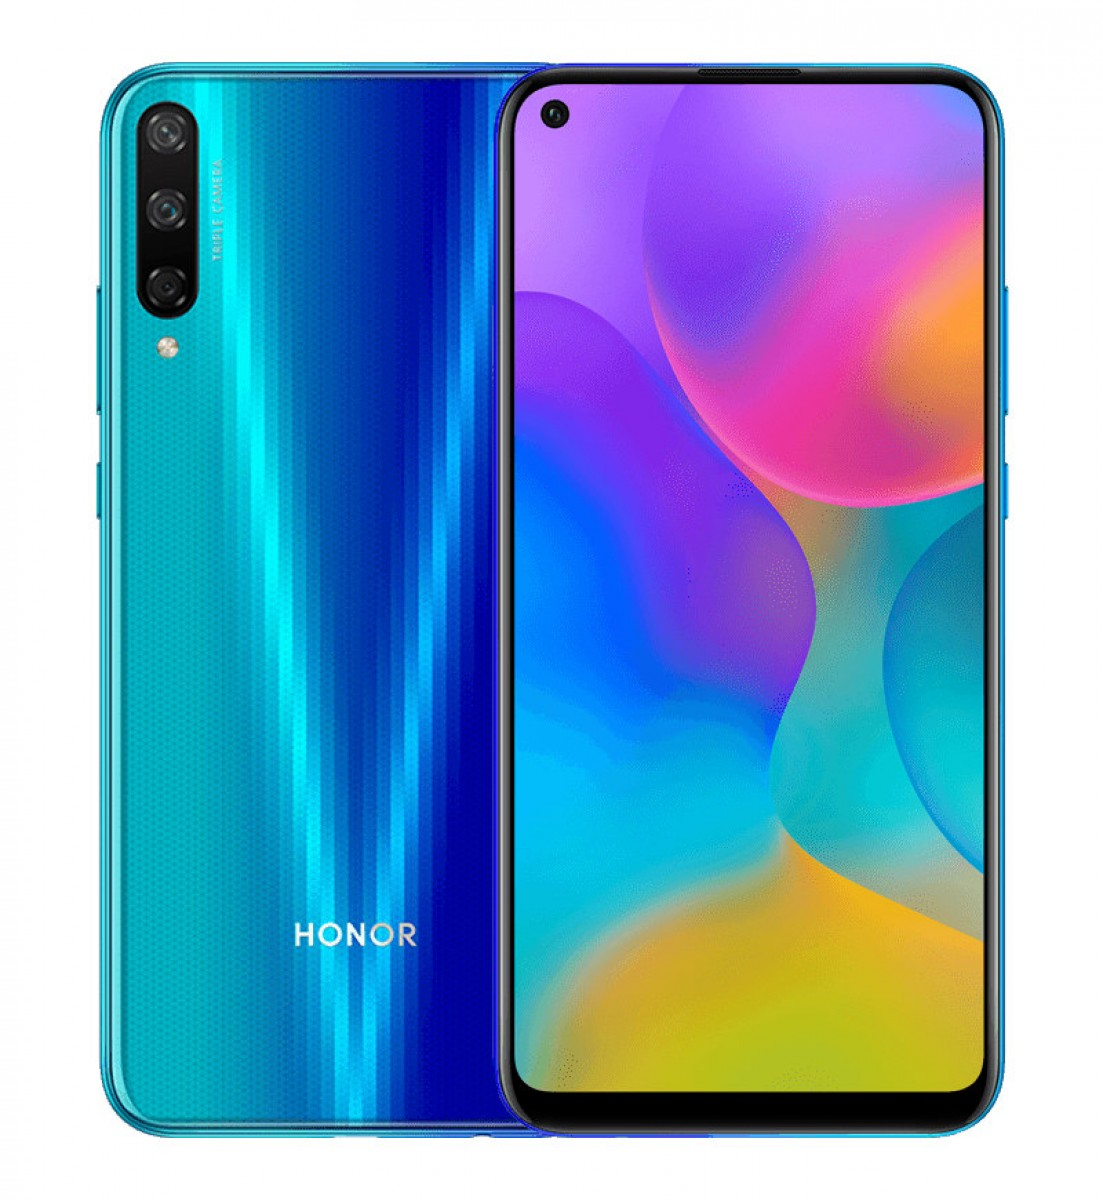 Honor Play 3 offers a 48MP camera and 4,000mAh battery an an